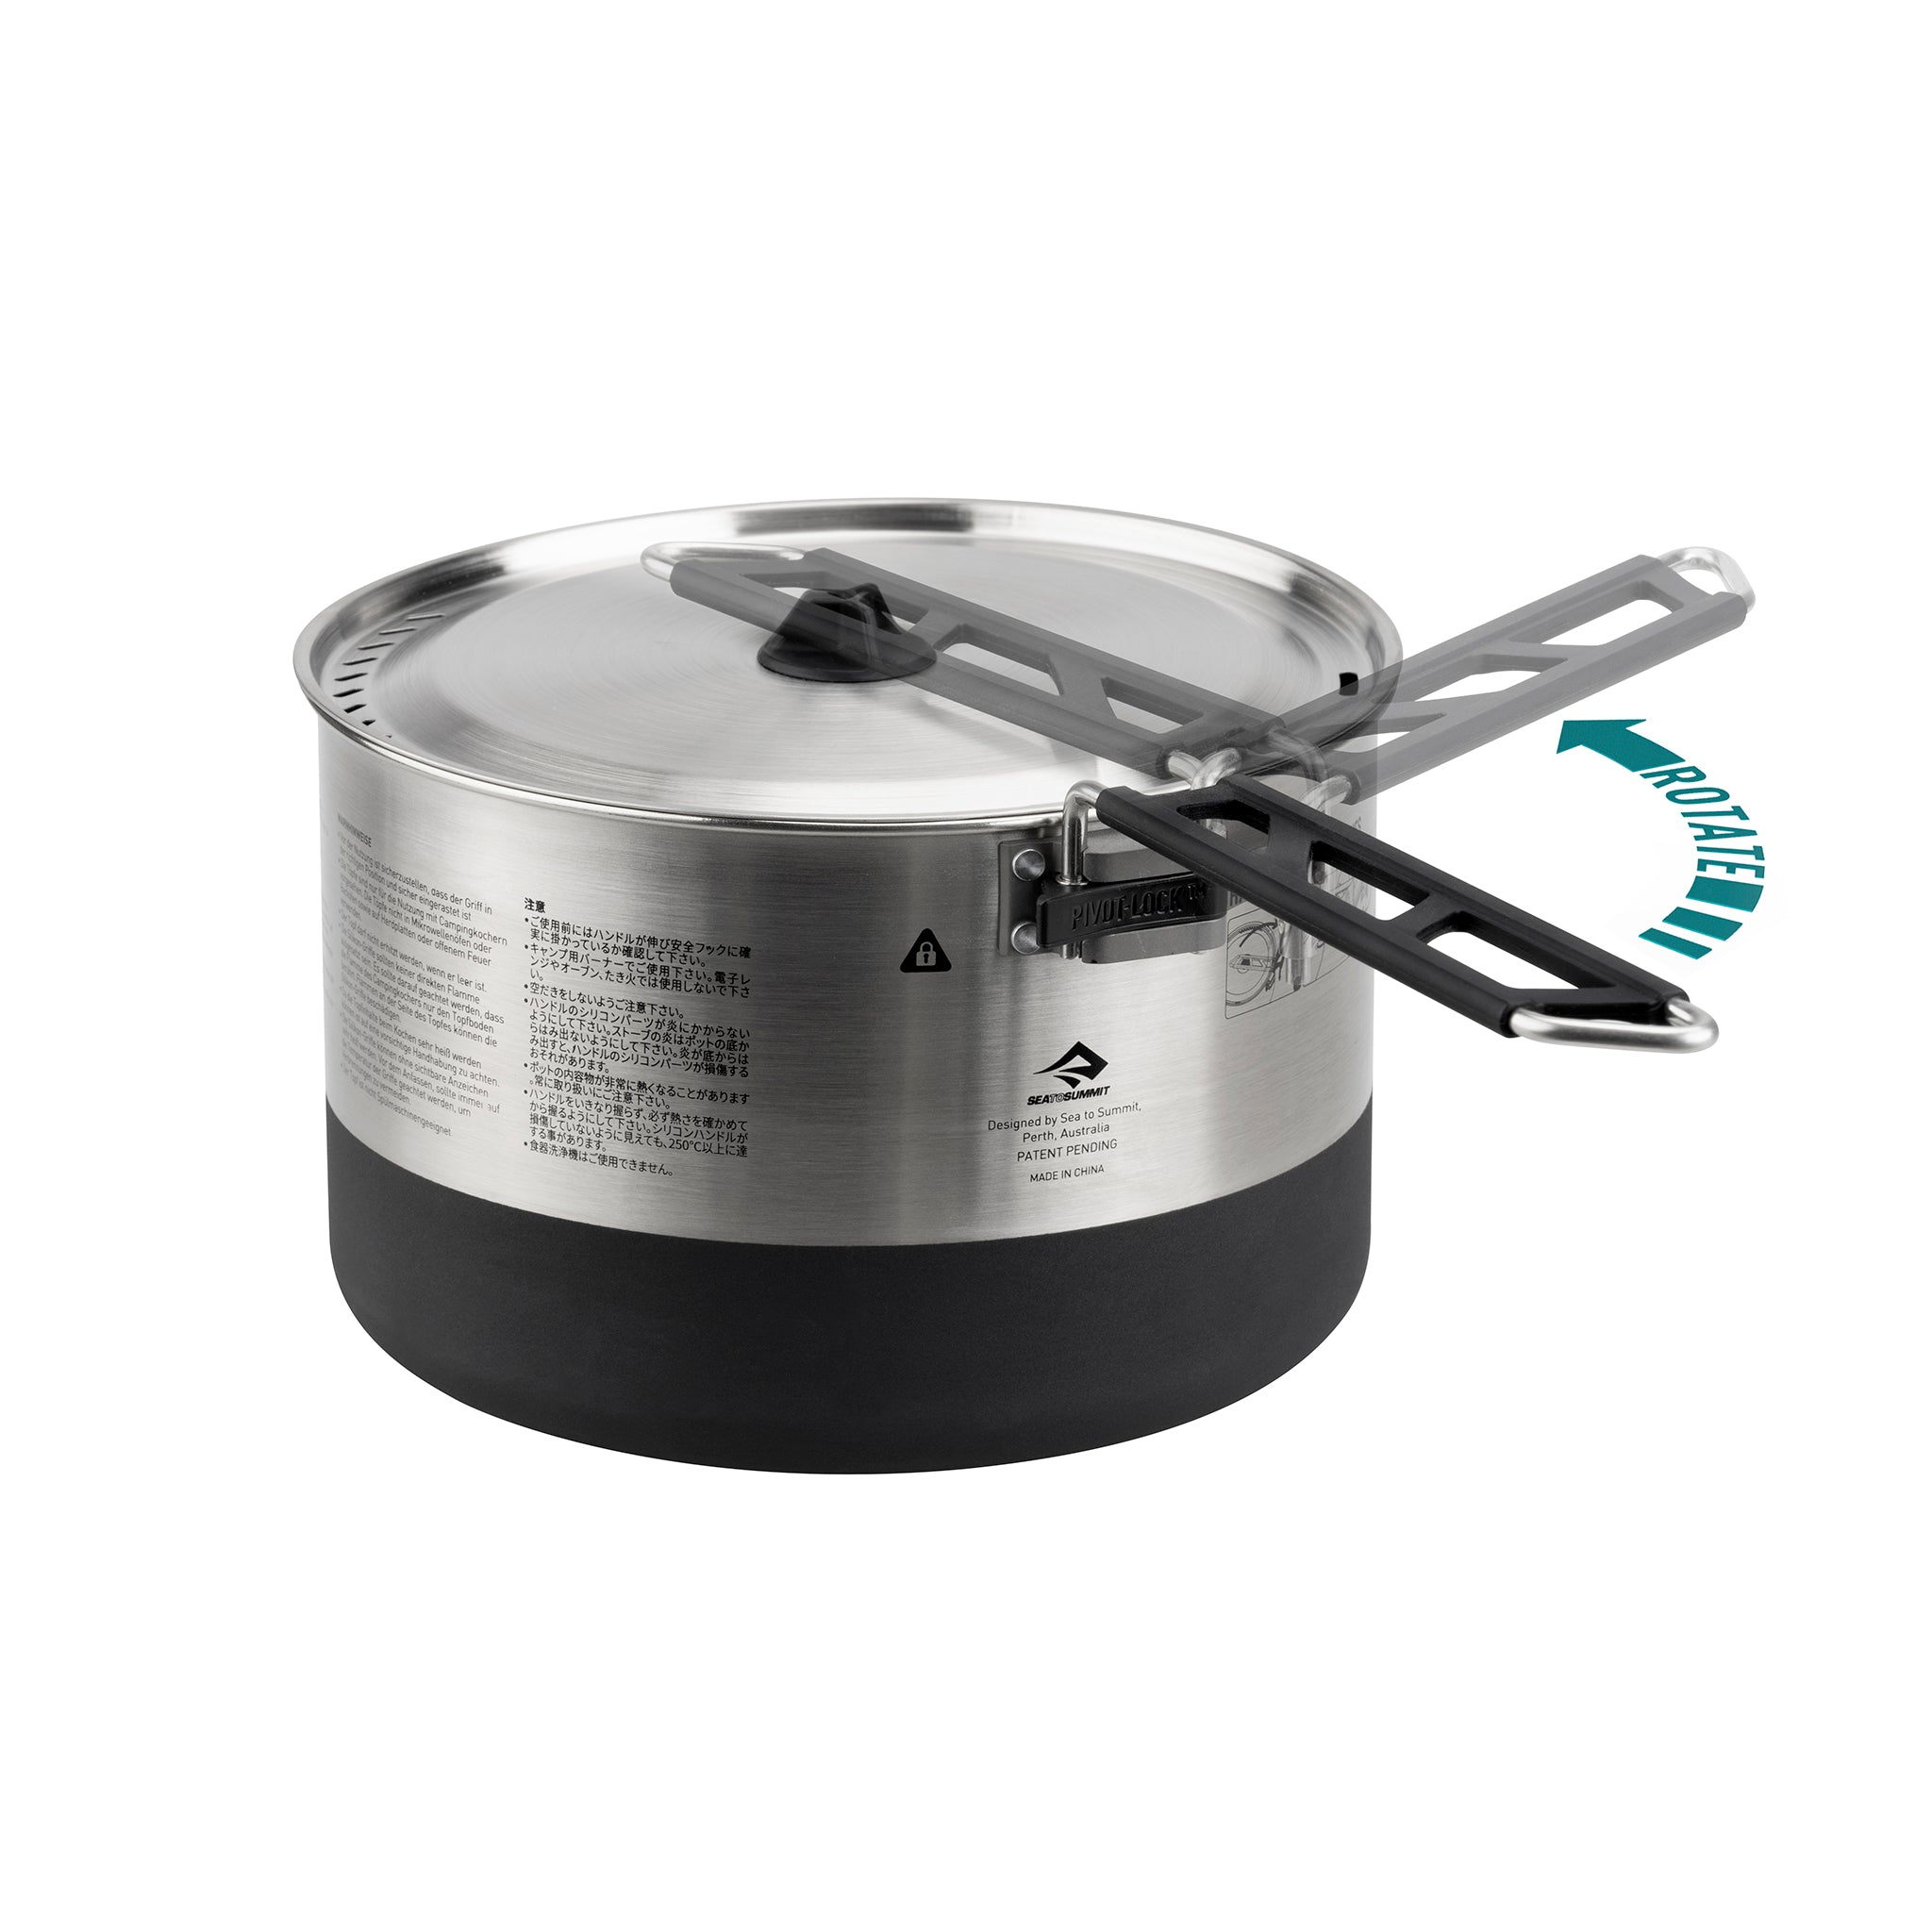 Sigma Stainless Steel Pot for Camping _ Pivot Lock Handle